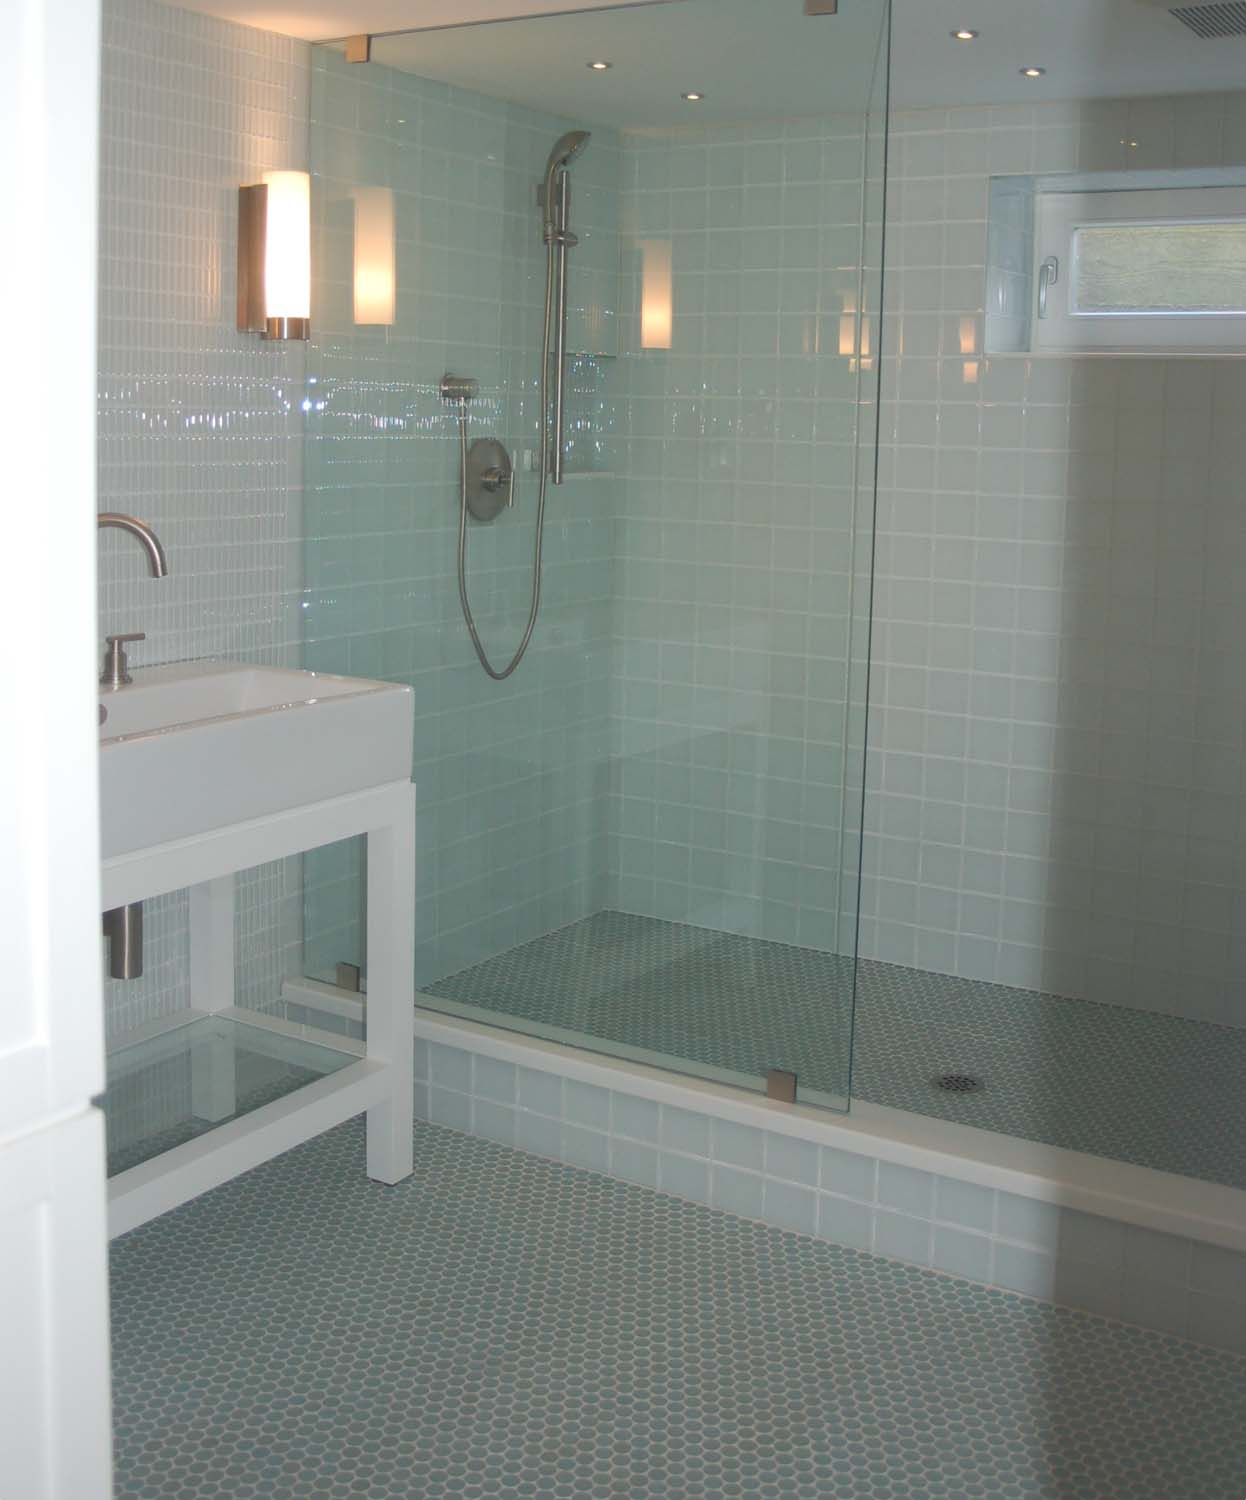 Flooring can make or break a room notes from the field for Flooring tiles for bathroom